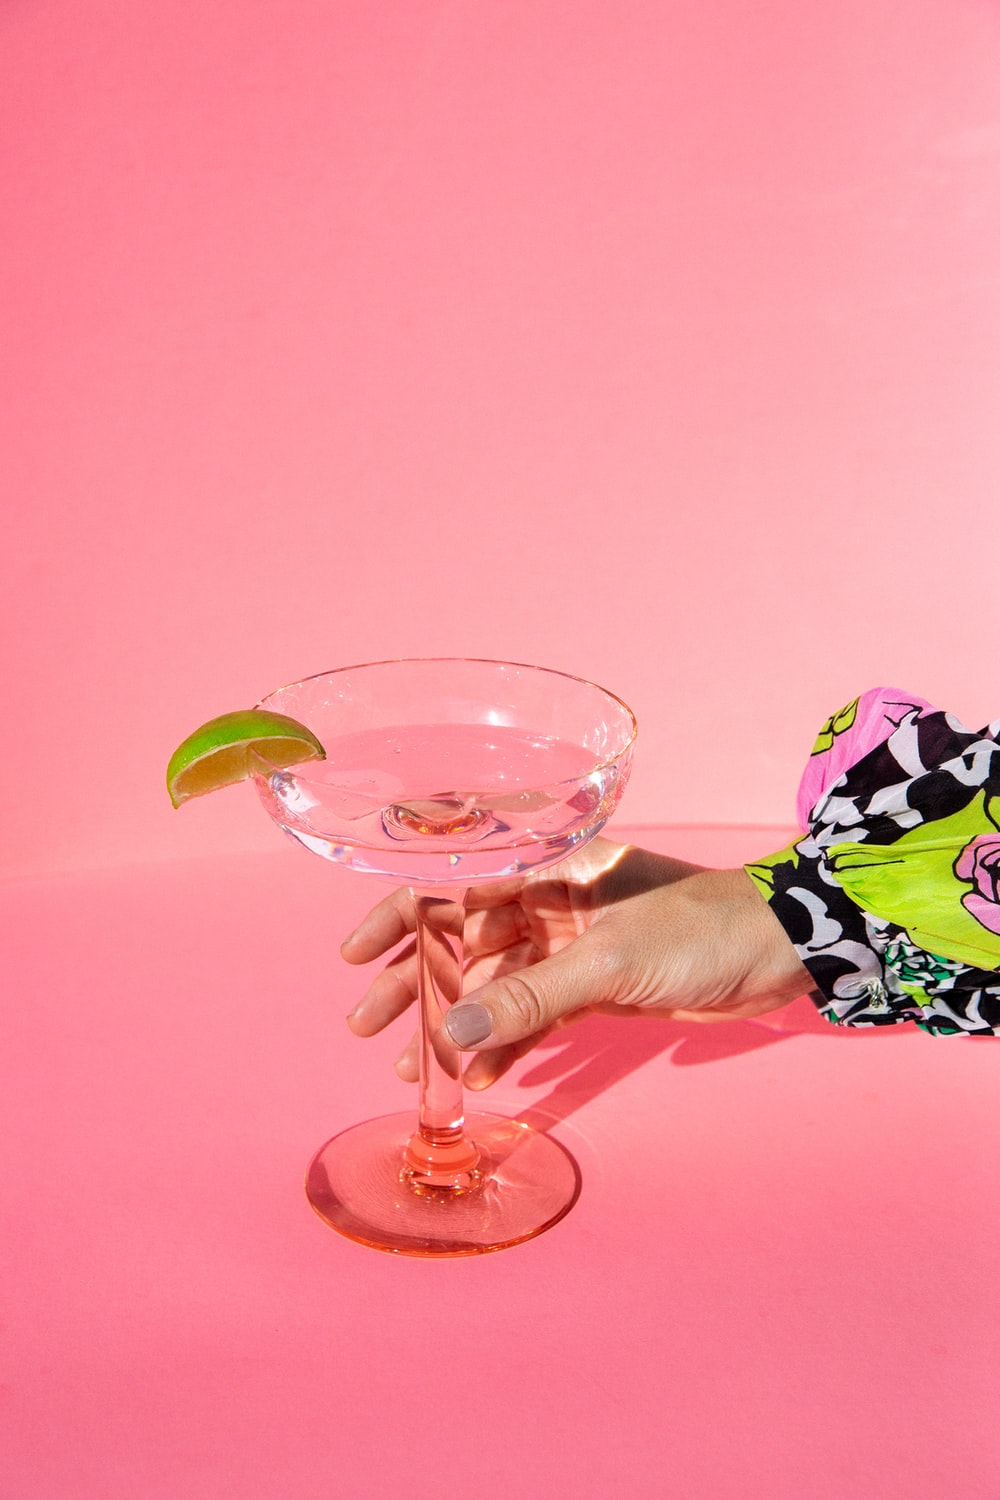 person holding clear wine glass with pink liquid